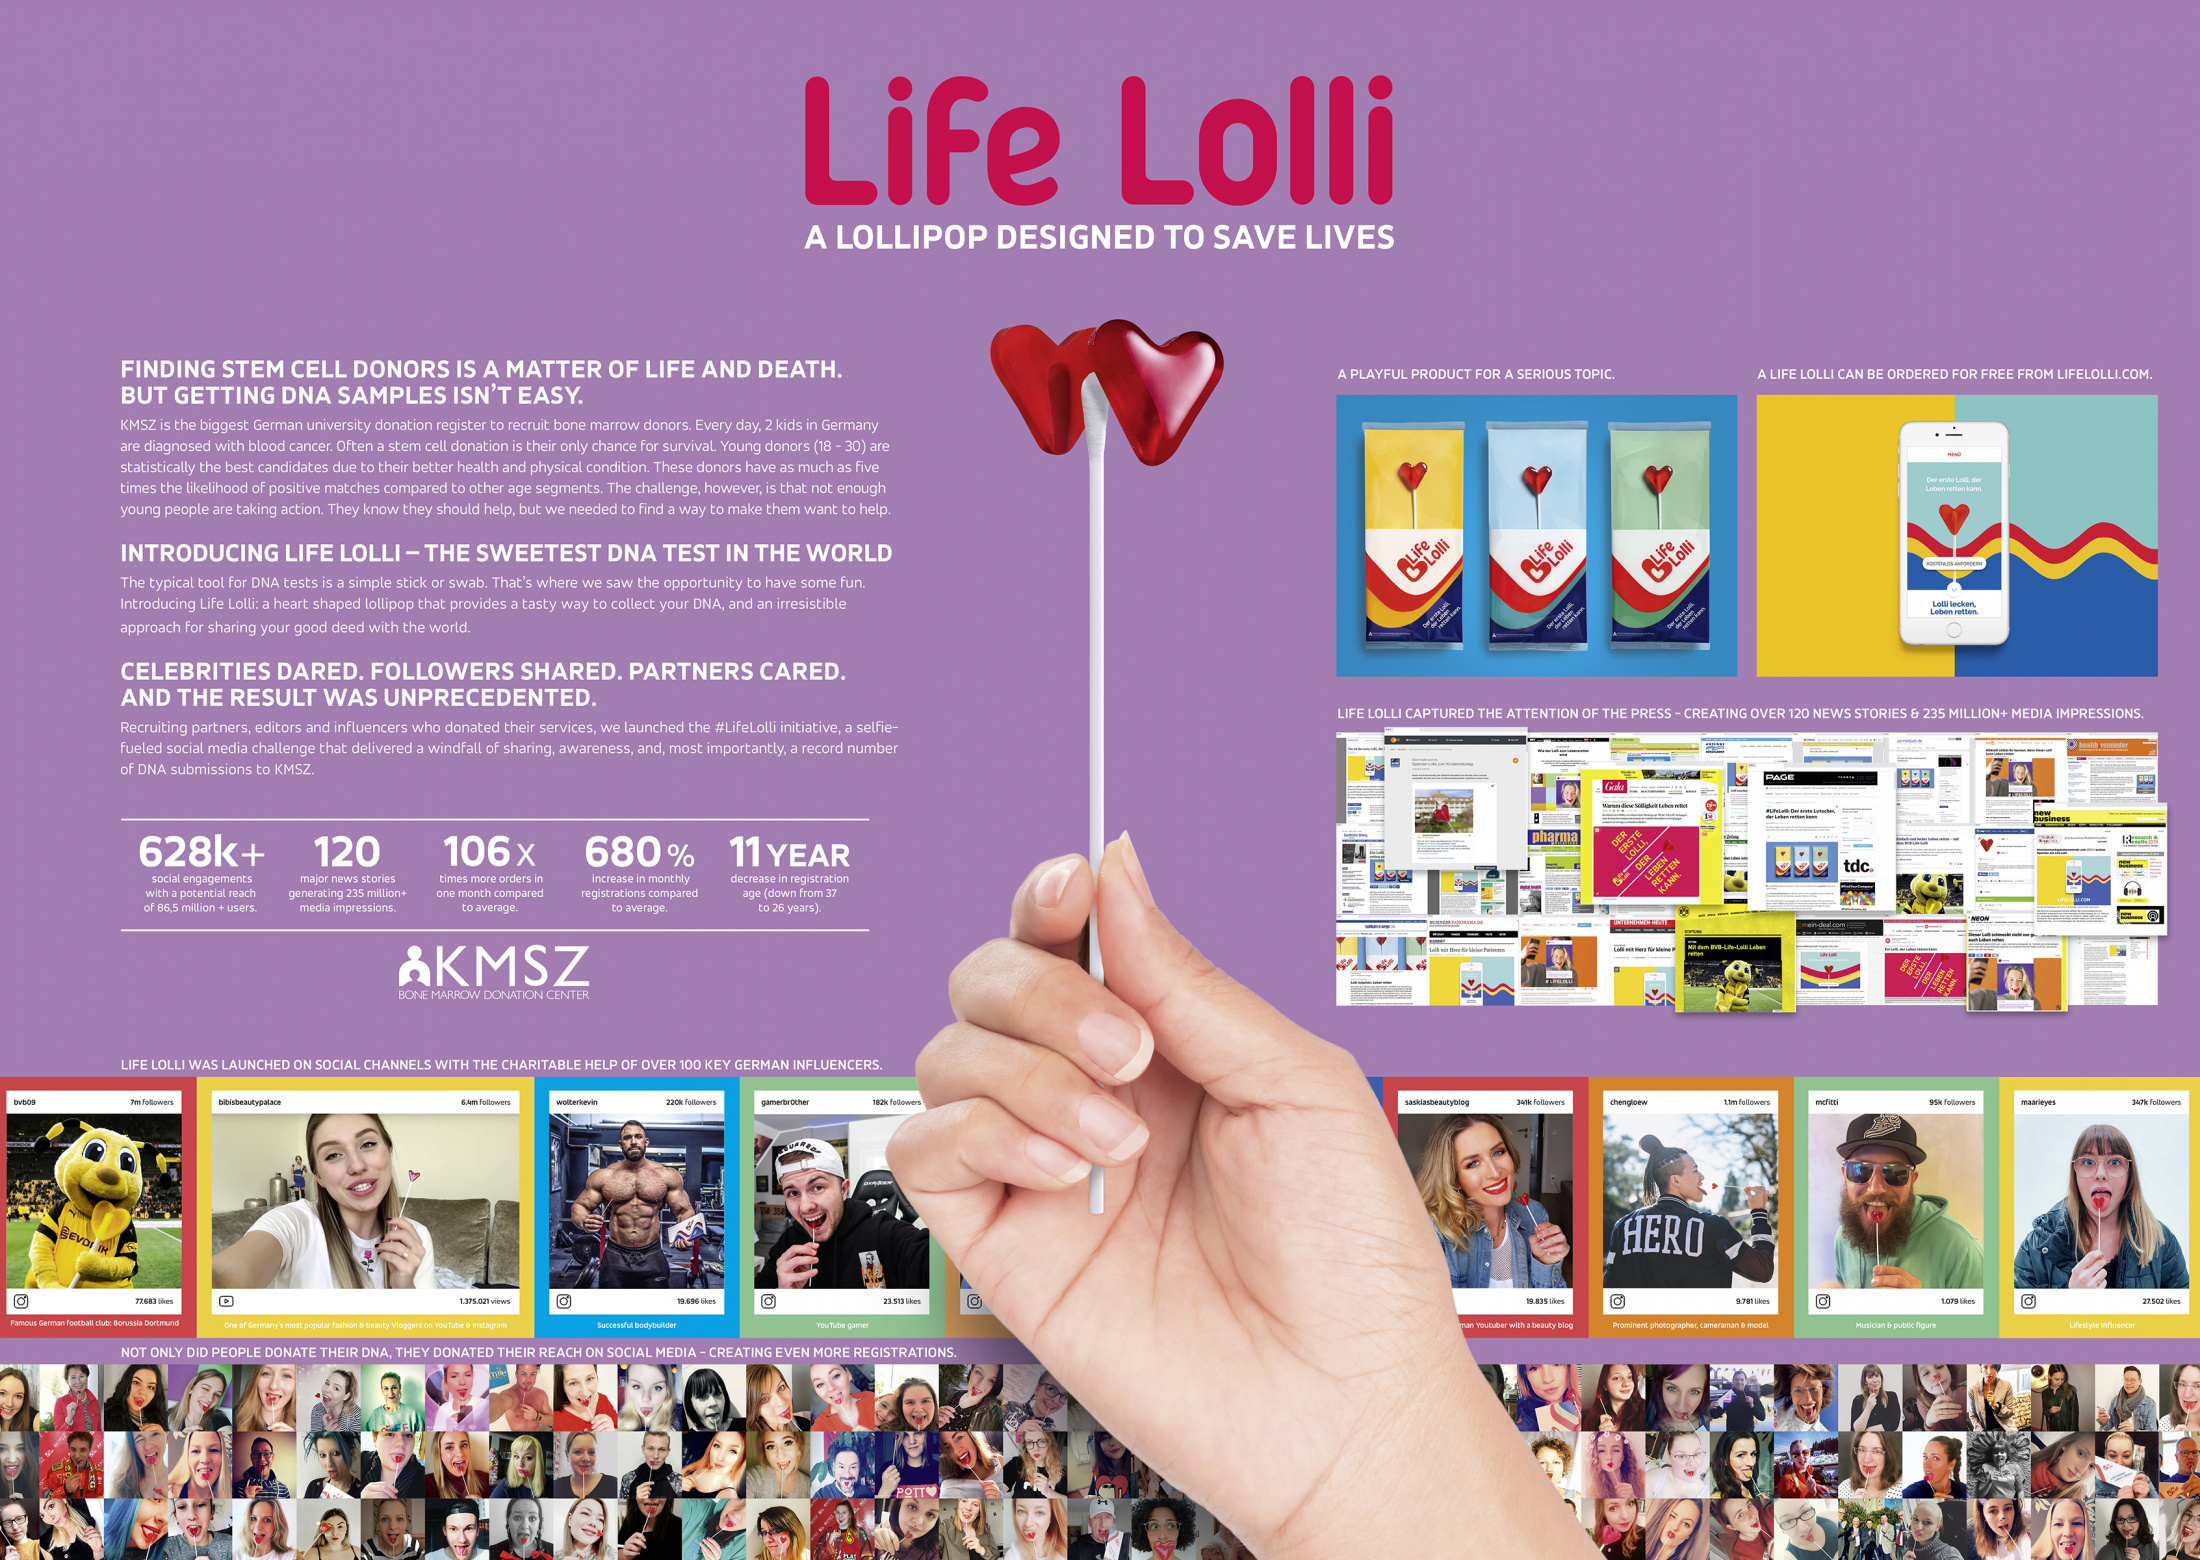 Image Media for Life Lolli